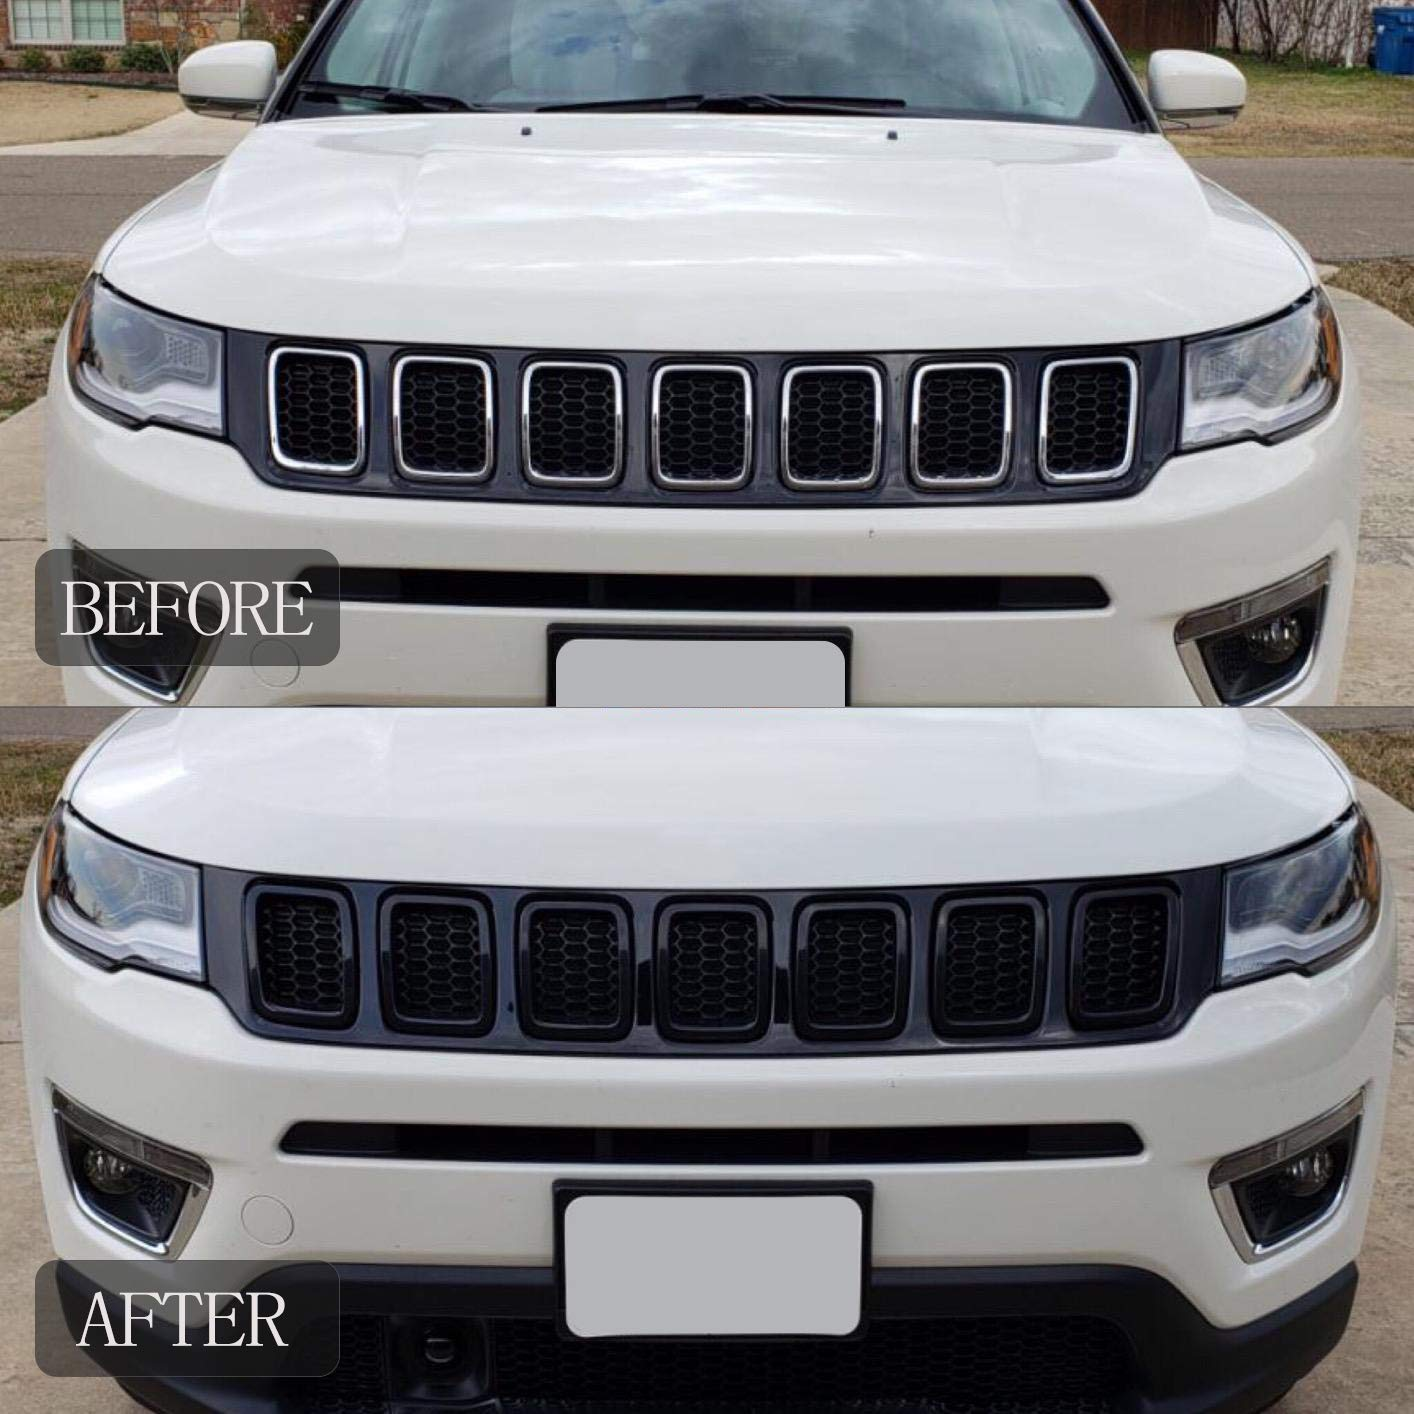 Front Grille Grill Insert Cover Frame Trims for Jeep Compass 2017-2019 Black